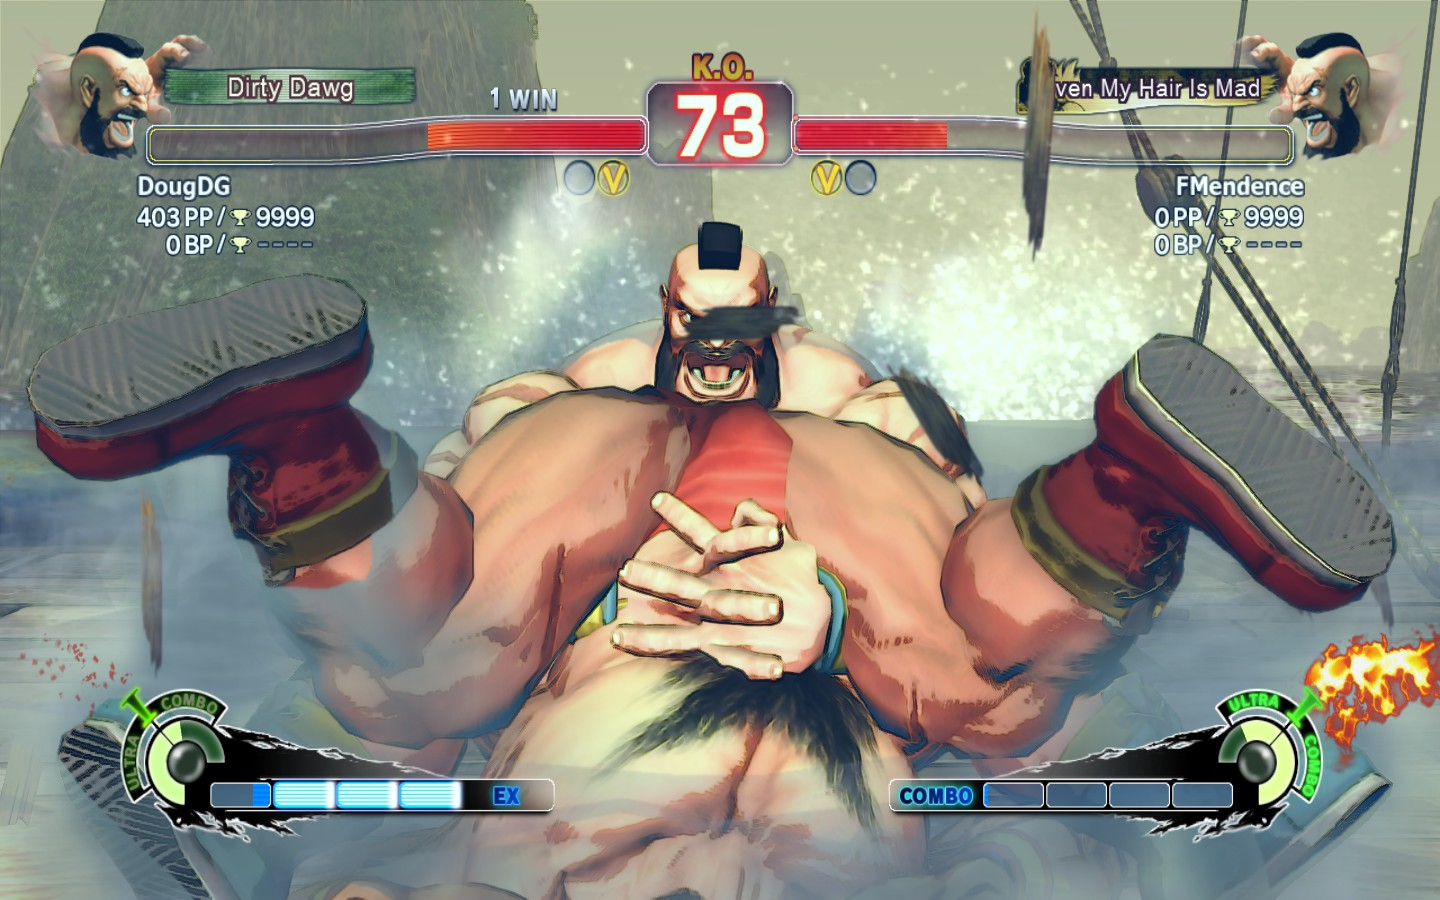 Nude street fighter characters